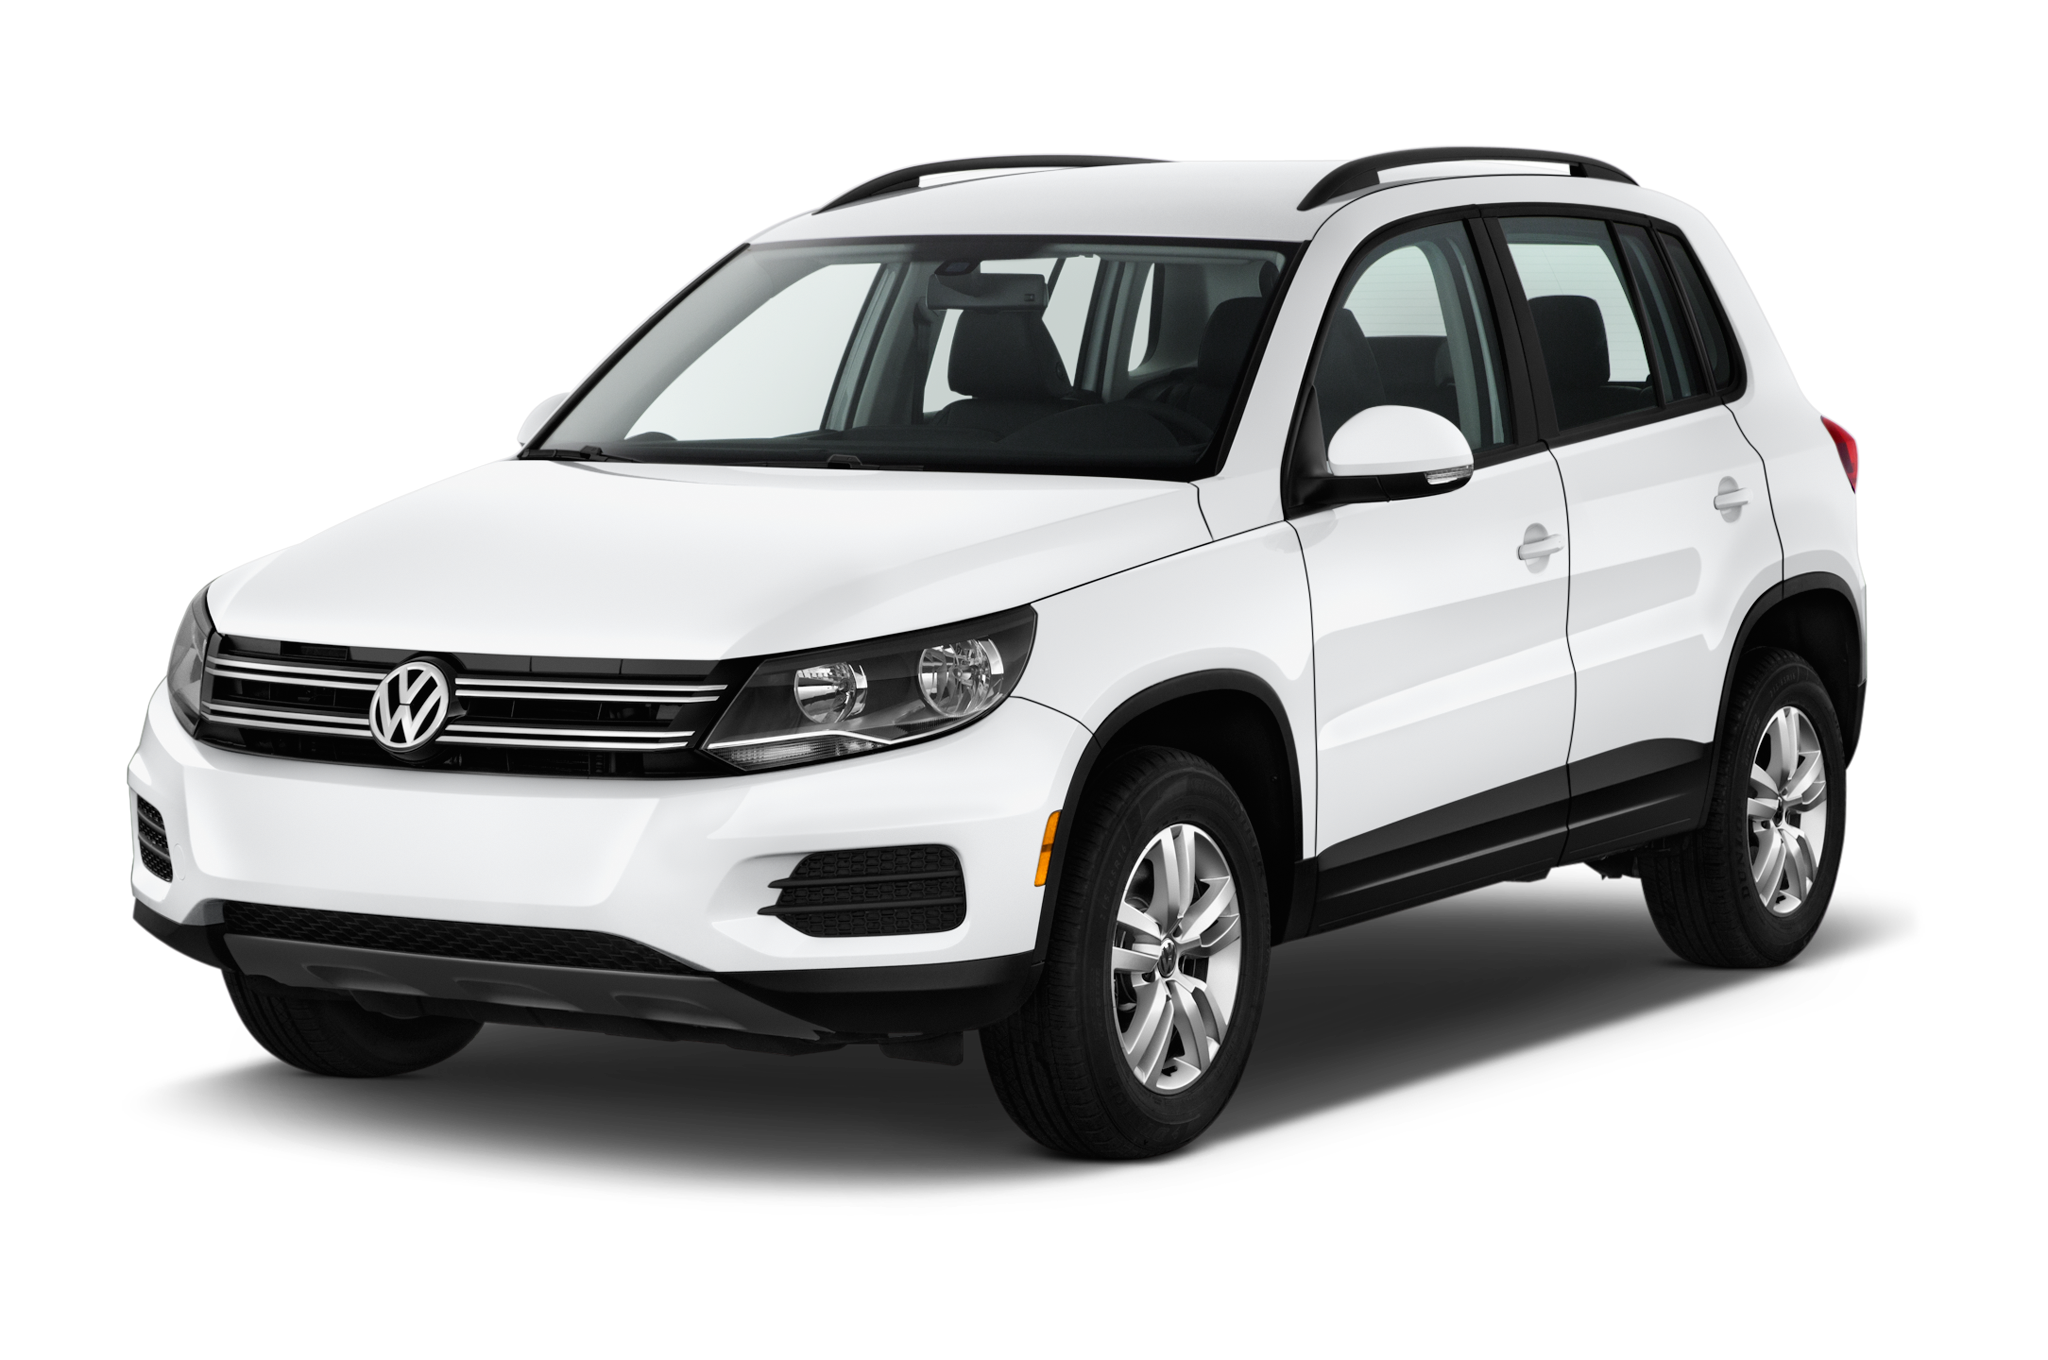 2017 volkswagen tiguan 2 0t sport specs and features msn. Black Bedroom Furniture Sets. Home Design Ideas